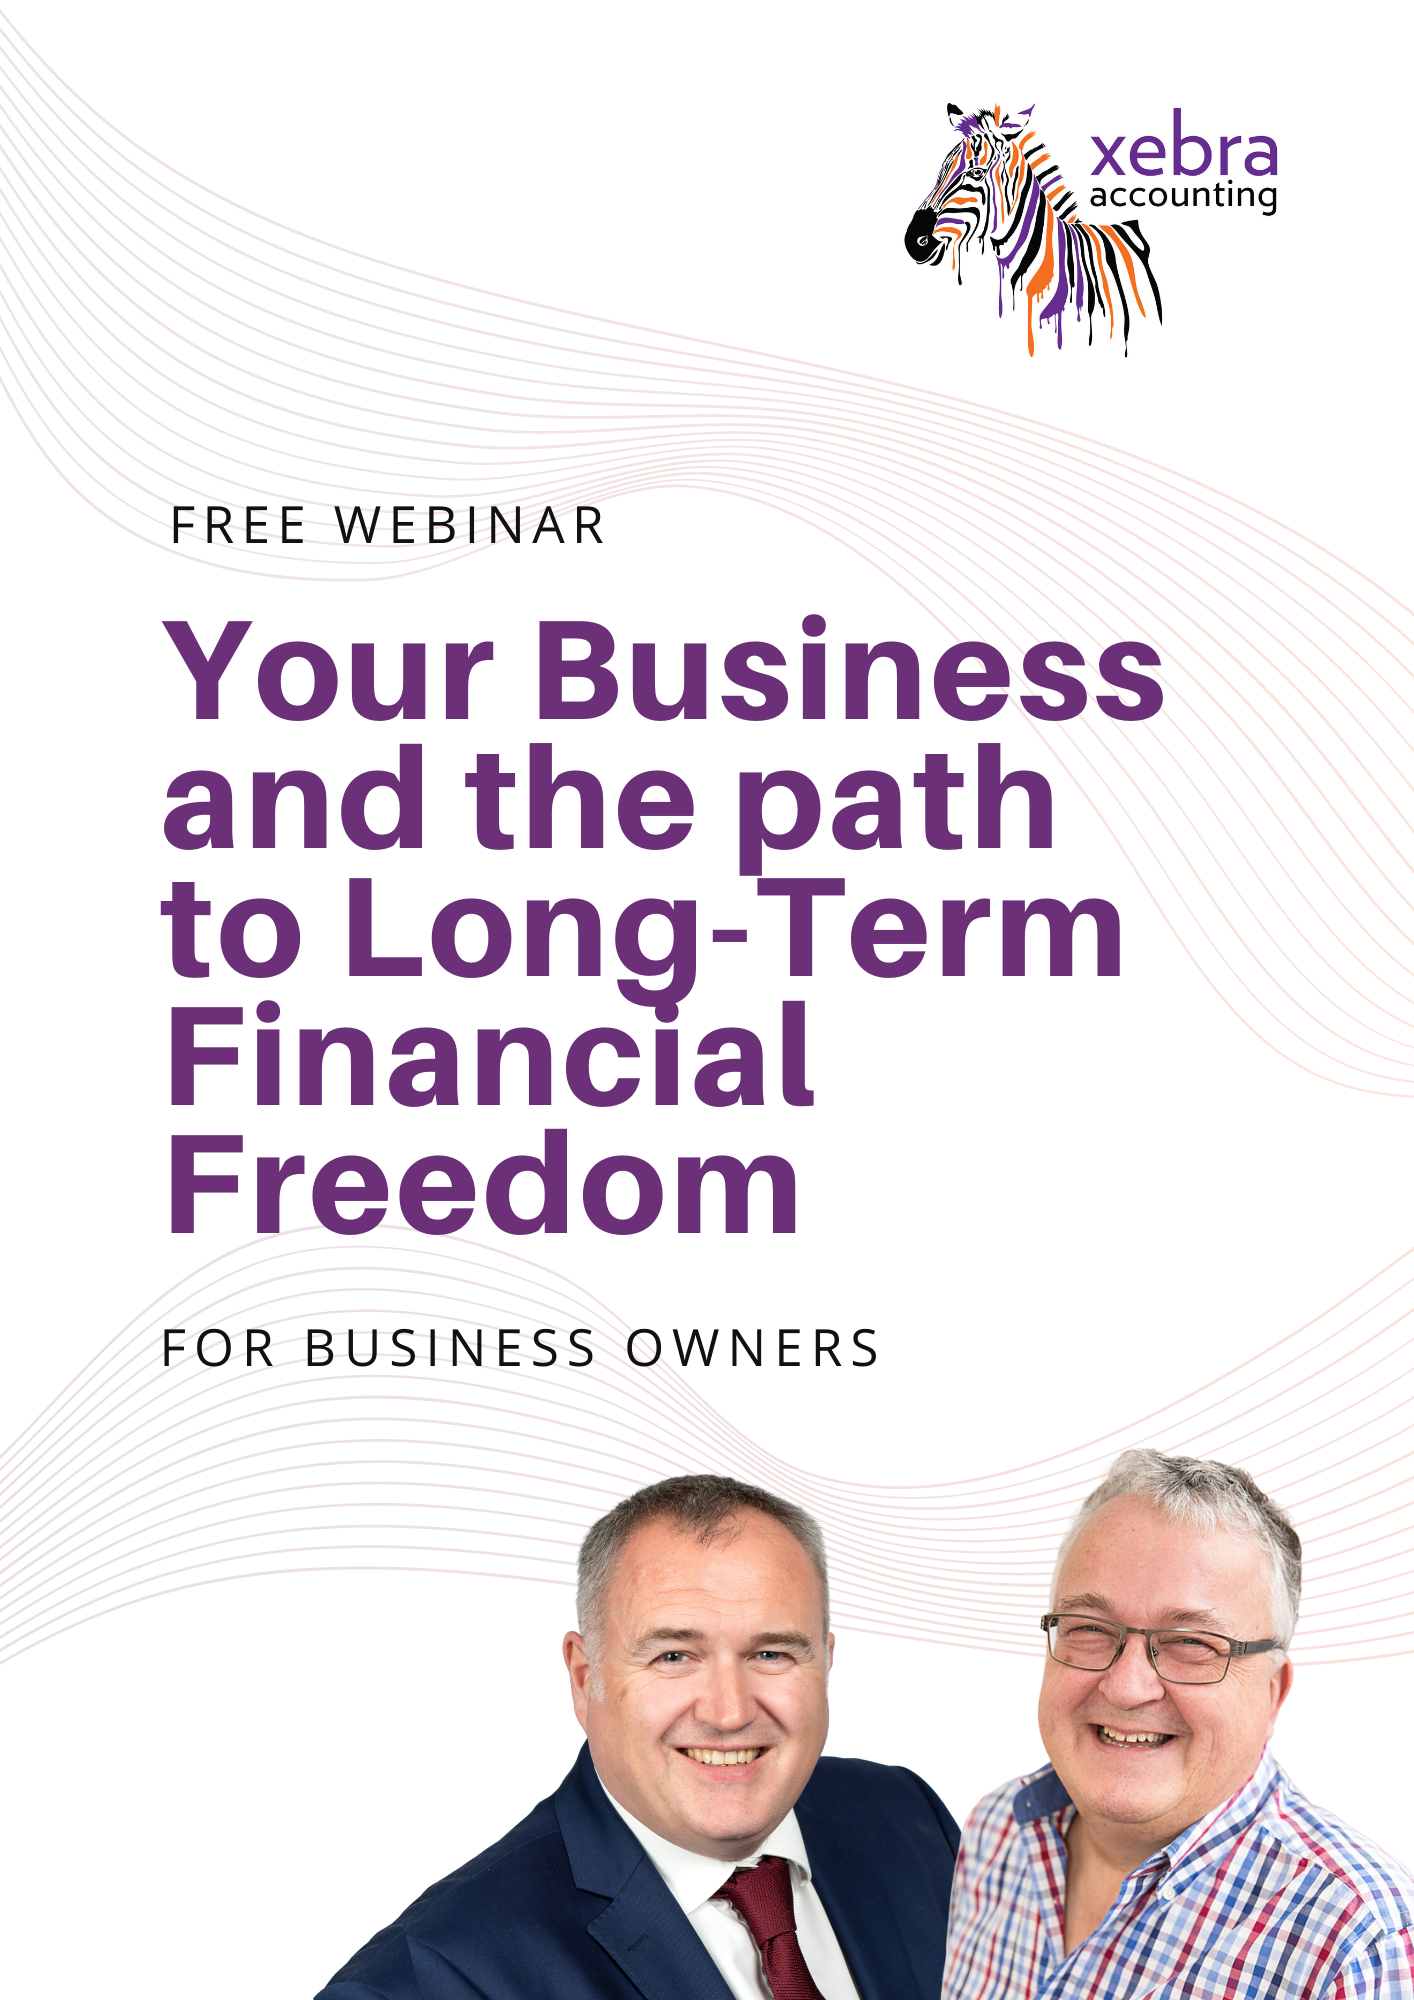 Xebra Accounting | Your Business and the path to Long-Term Financial Freedom | Sterling & Law